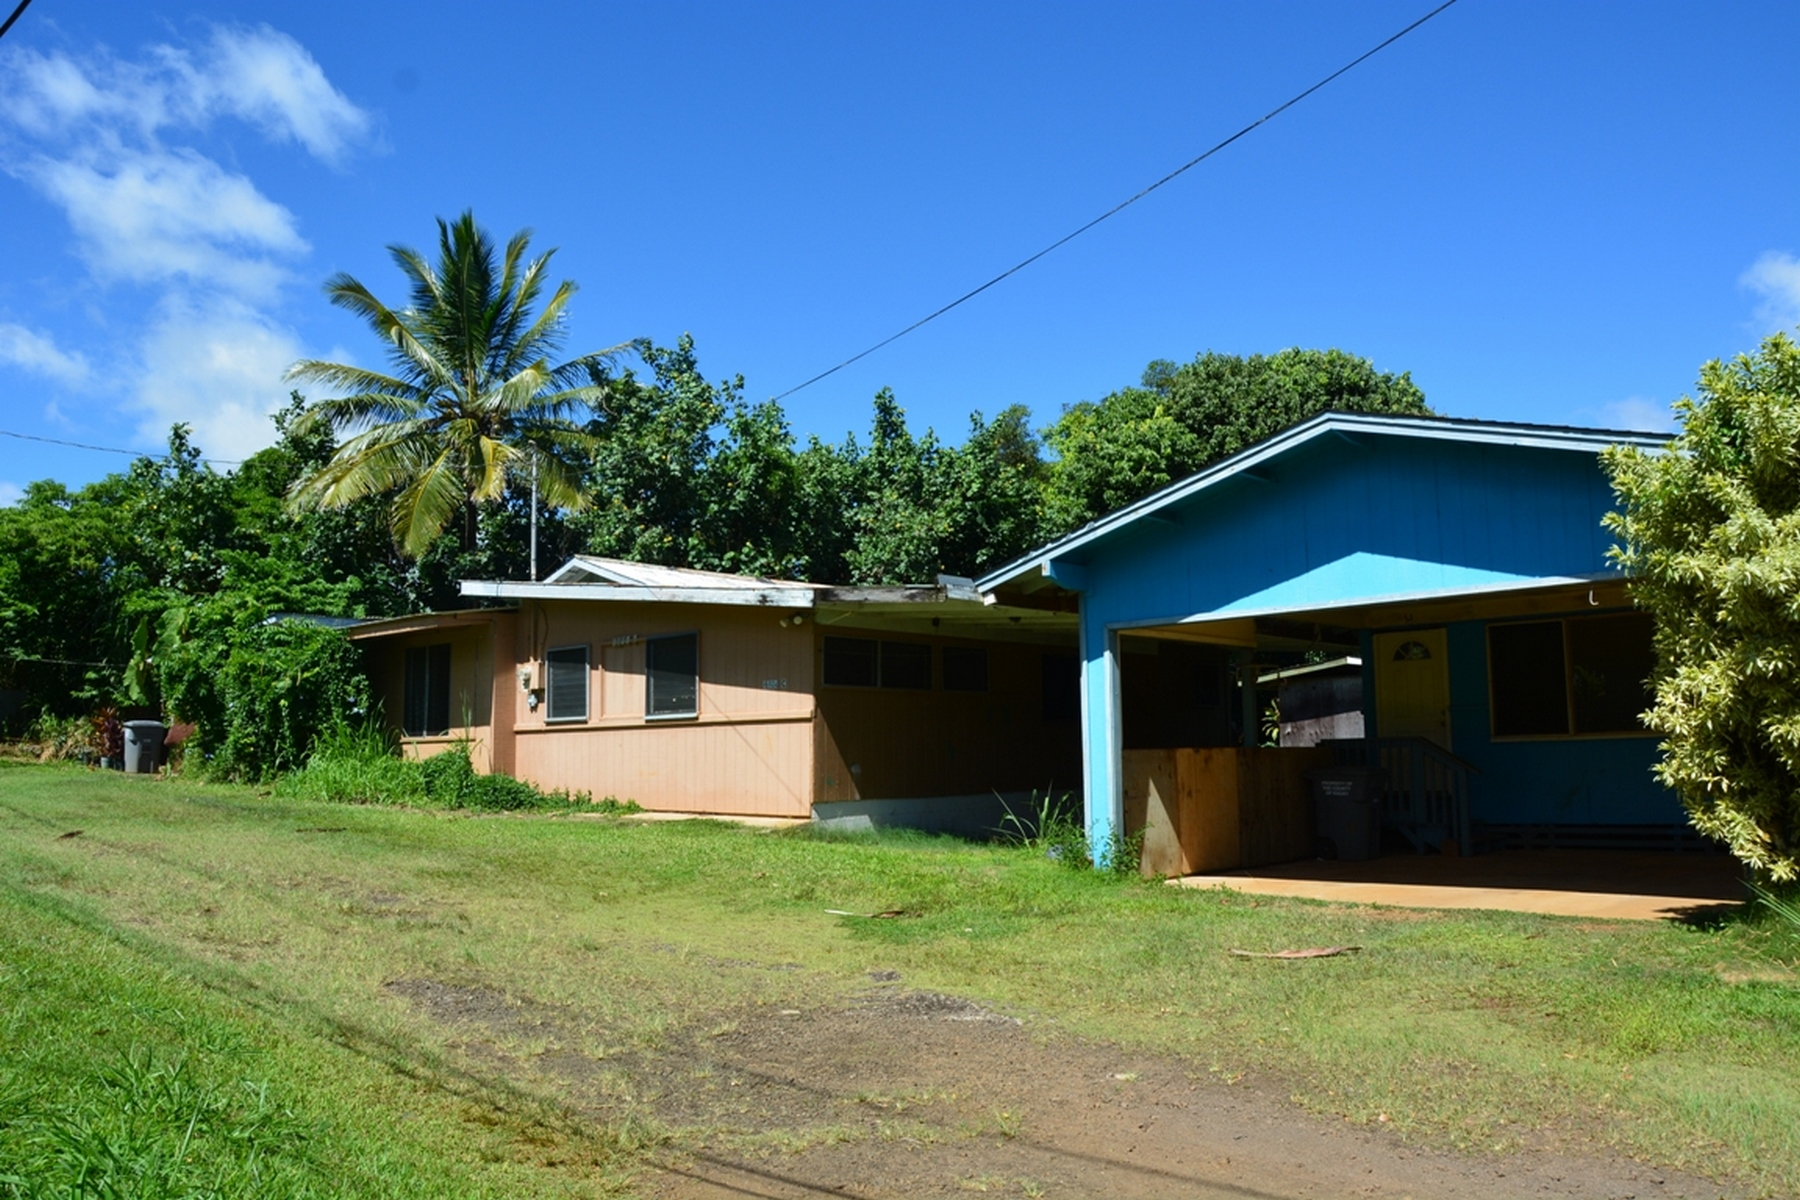 Single Family Home for Sale at Punee Rd 4406 Punee Rd #1, Koloa, Hawaii, 96756 United States